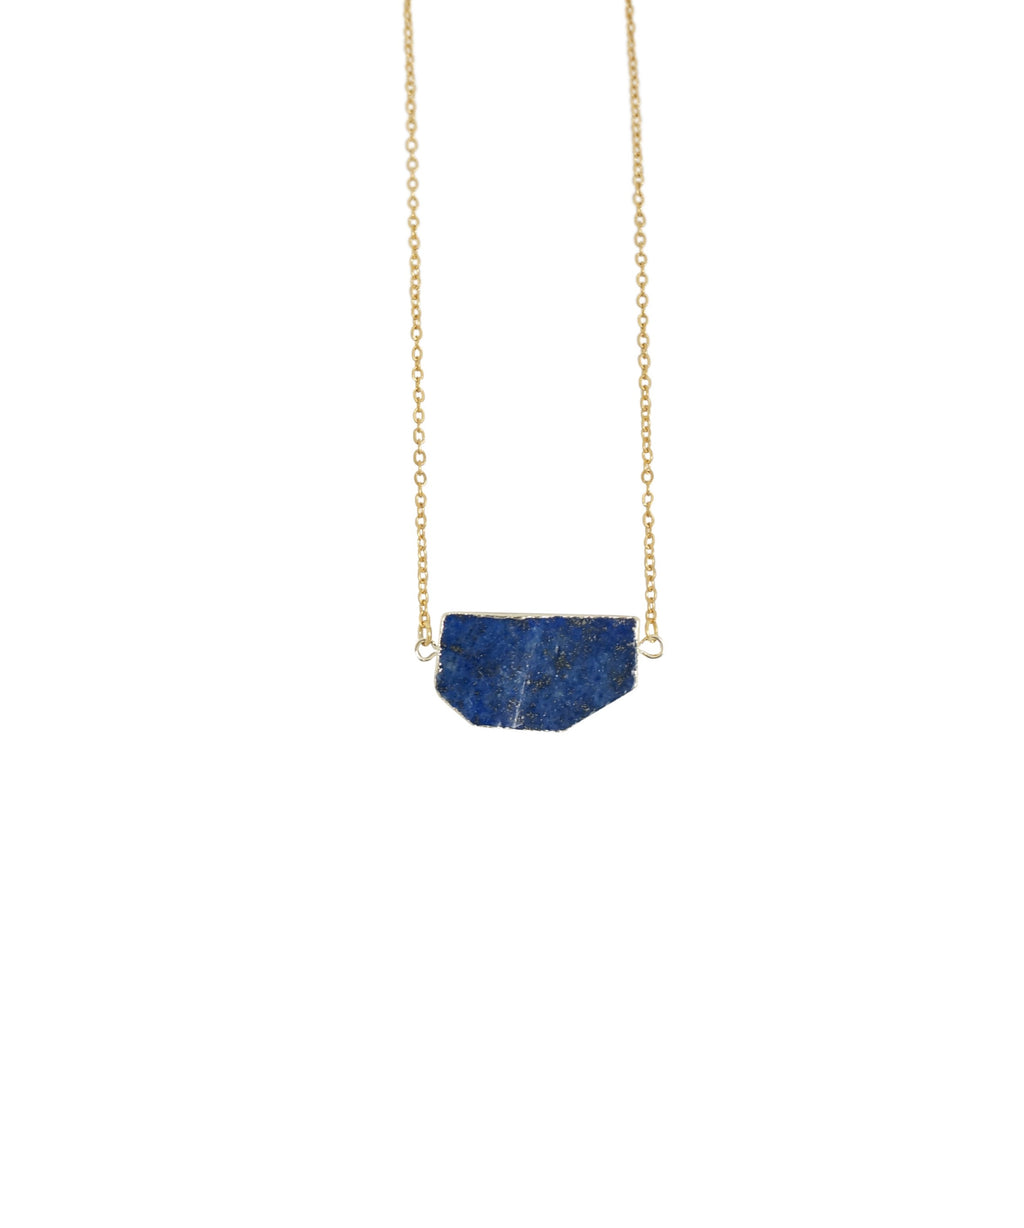 Elevate Necklace - Carolyn Hearn Designs